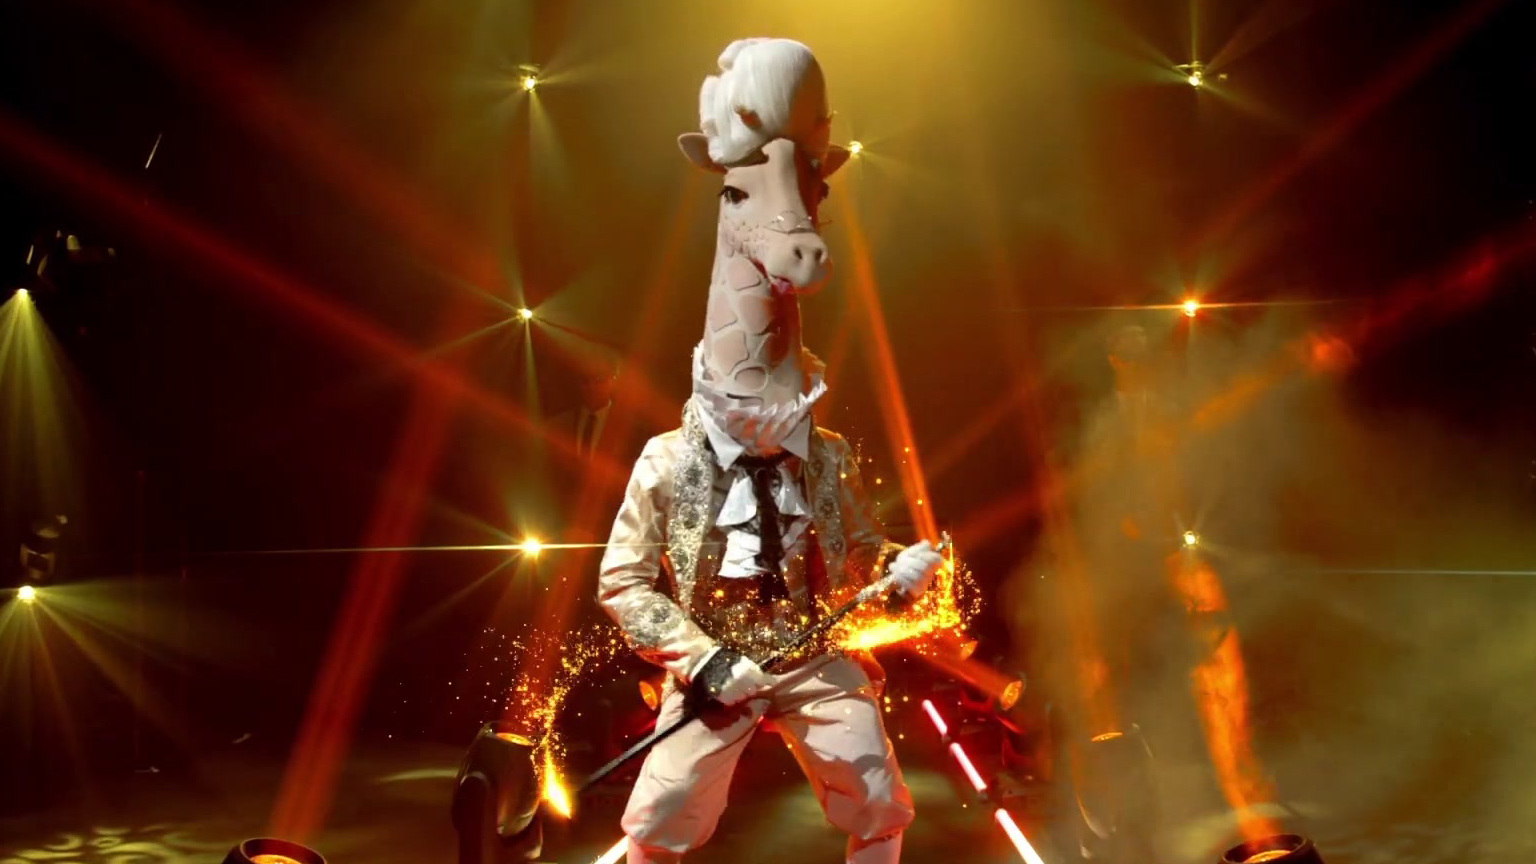 The Masked Singer: Introducing The Giraffe